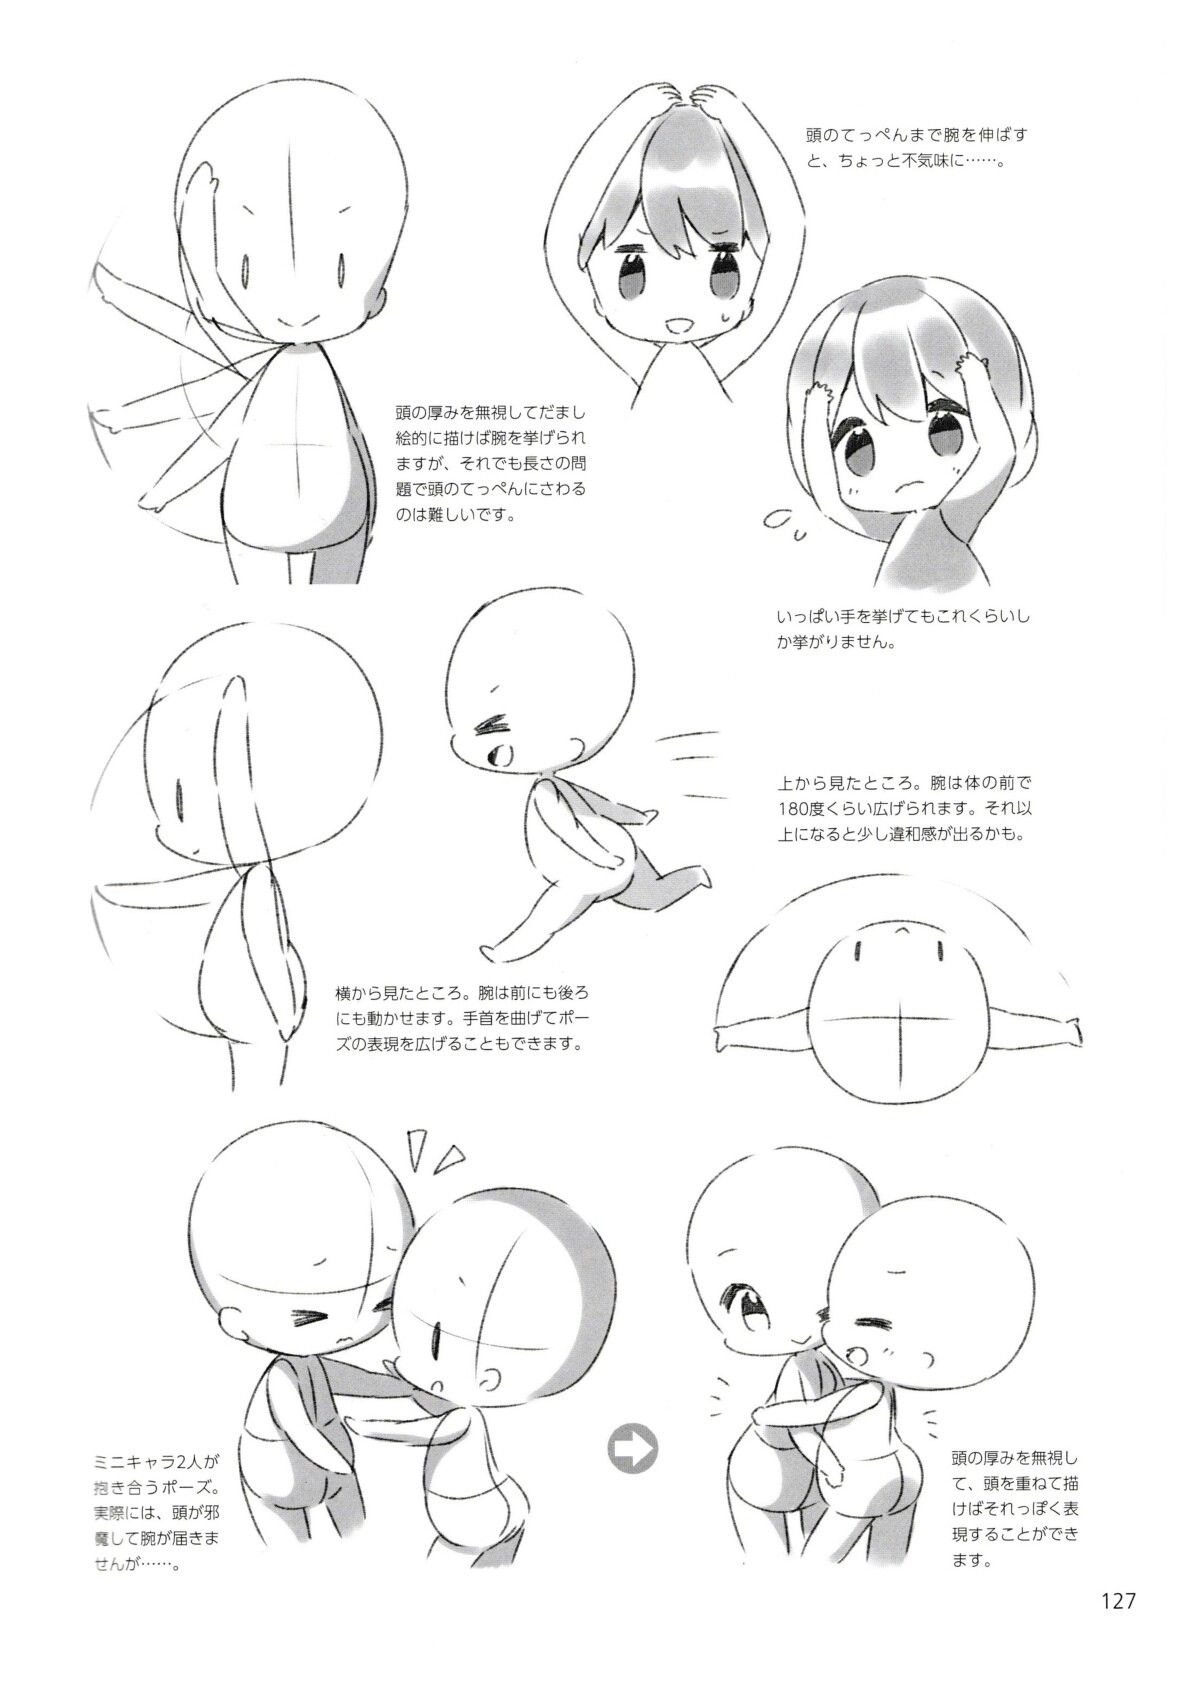 How To Draw Chibis 127 Anime Drawing Books Manga Drawing Tutorials Anime Drawings Sketches